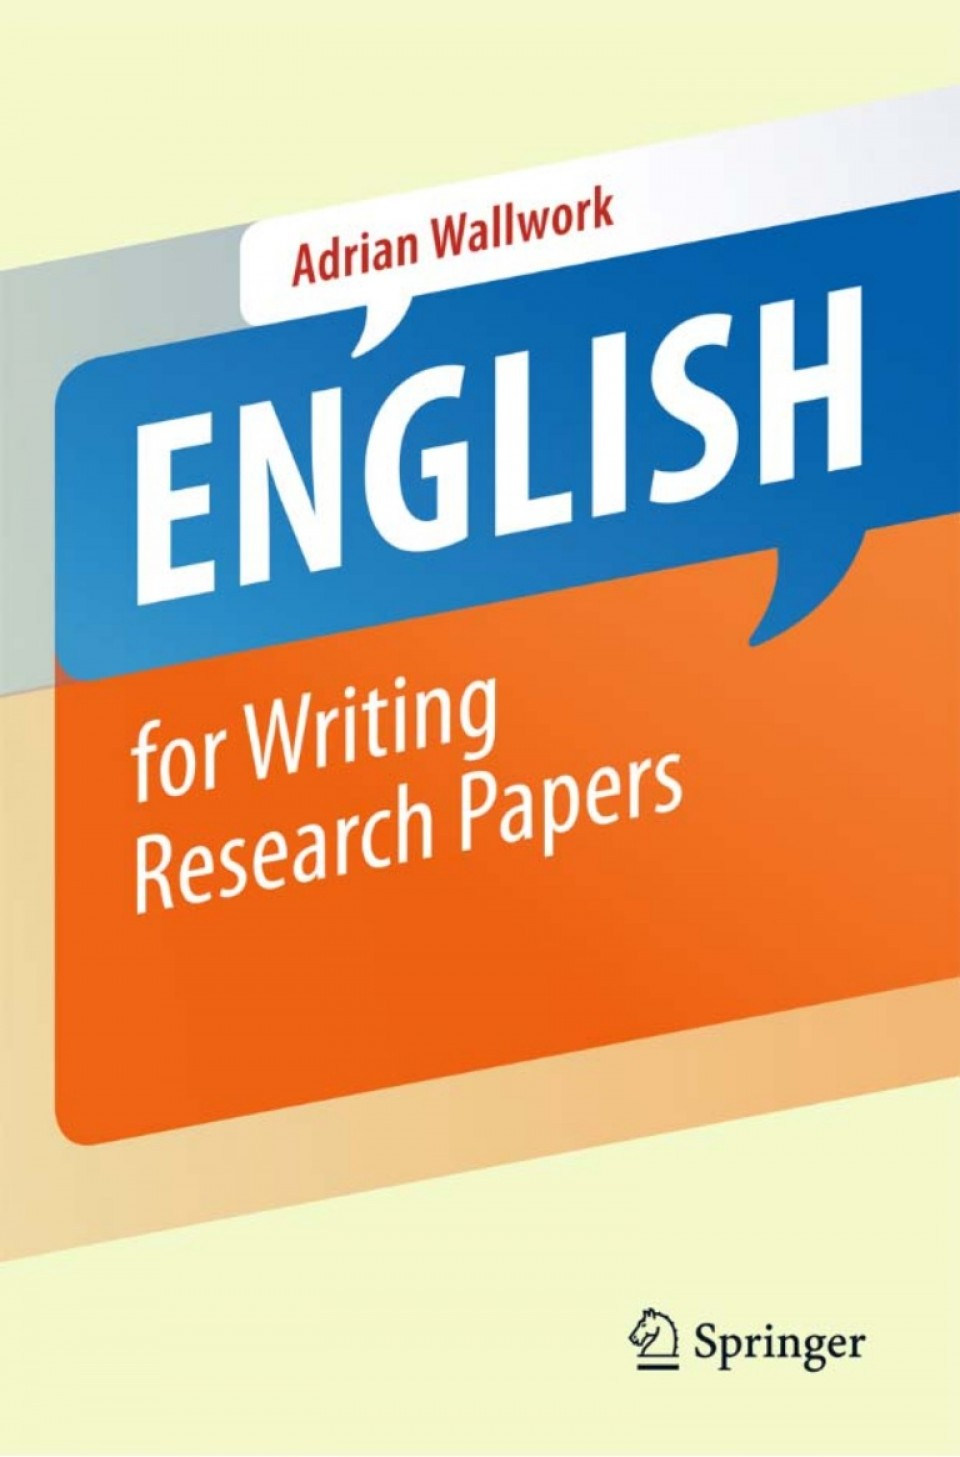 019 Englishforwritingresearchpapers Conversion Gate01 Thumbnail Writing Research Striking Paper Meme Papers A Complete Guide 15th Edition Pdf Free 16th 960